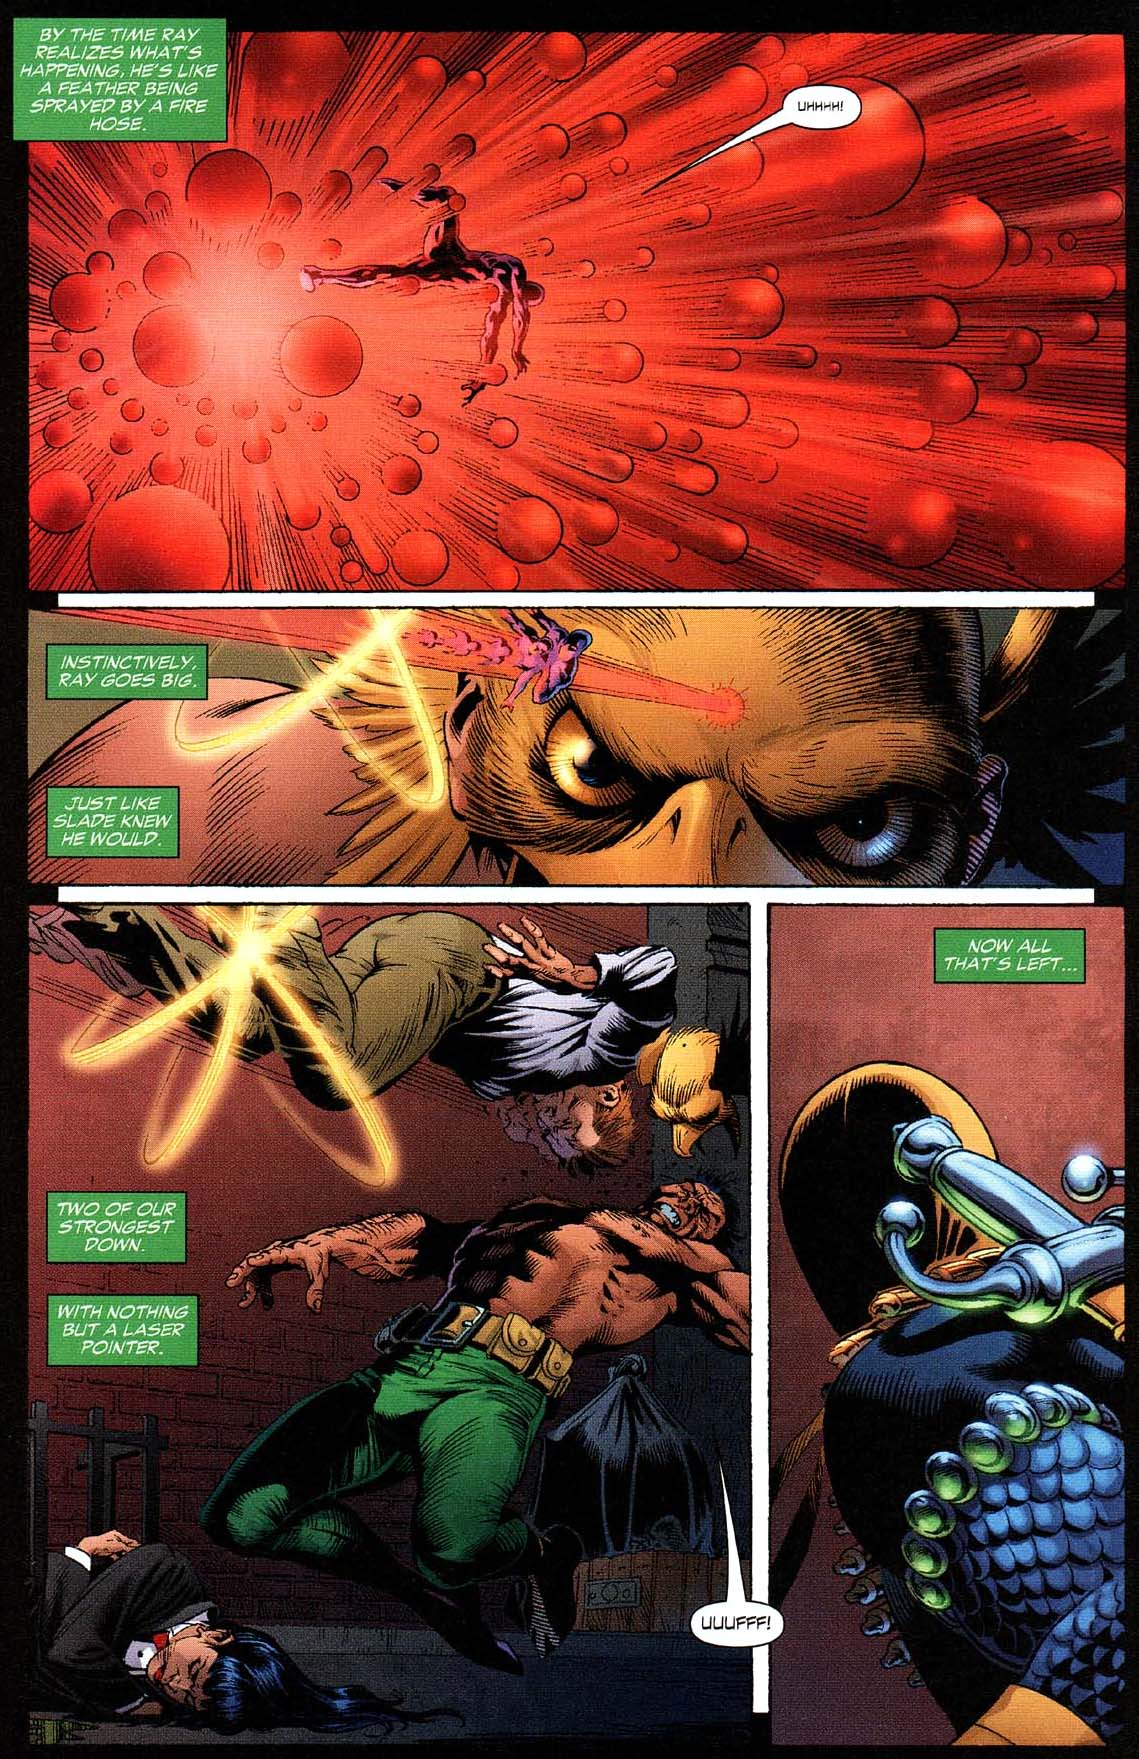 Deathstroke takes down hawkman and the atom 3